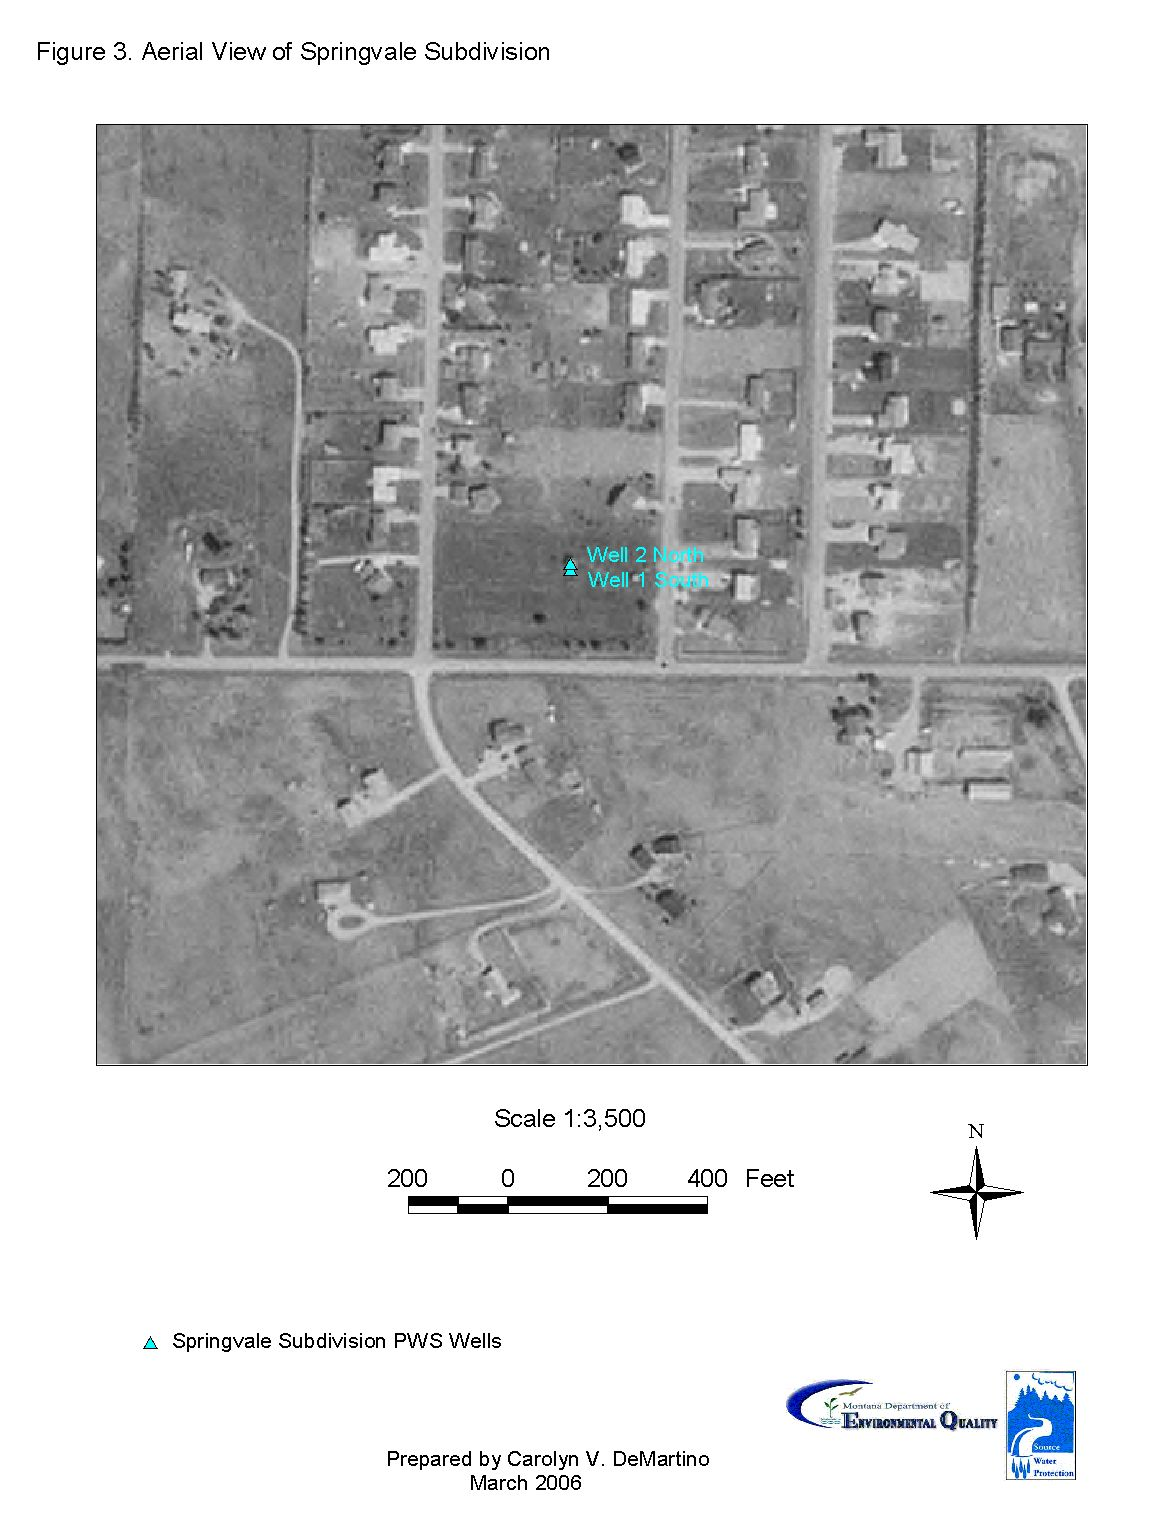 Springvale Subdivision Source Water Delineation & Assessment